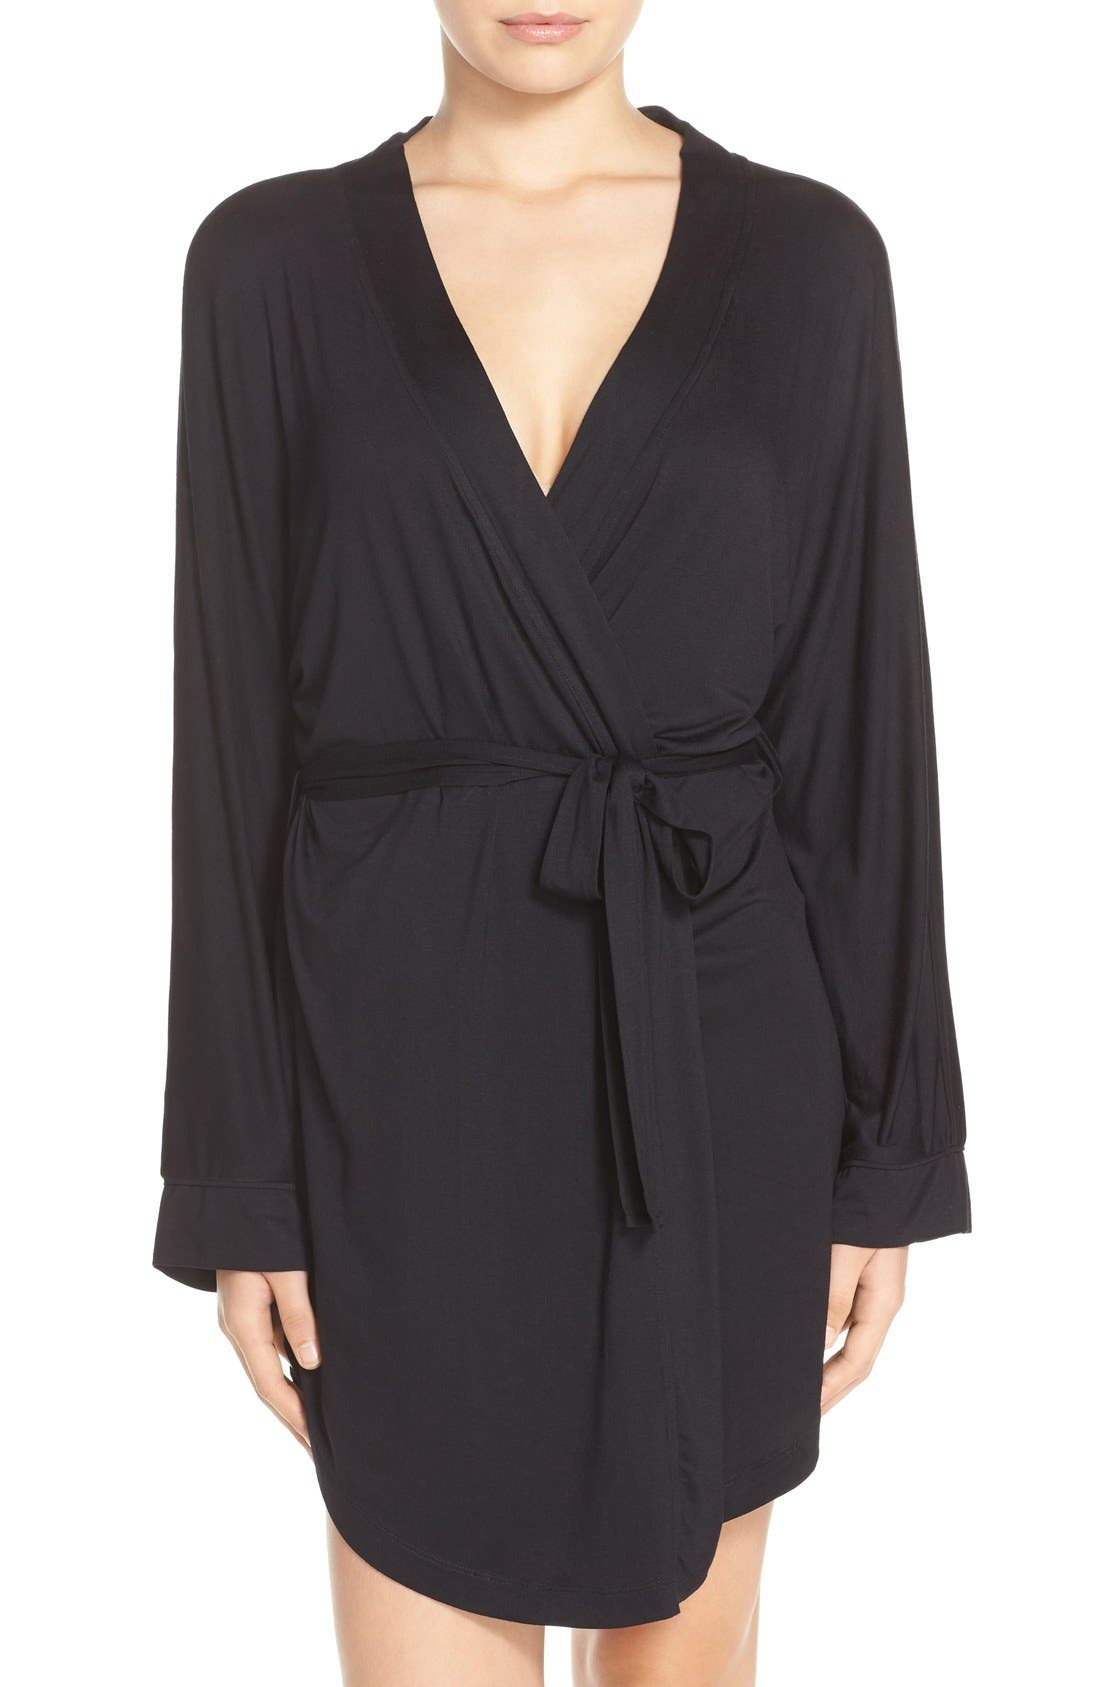 Honeydew Intimates All American Jersey Robe (2 for $60)